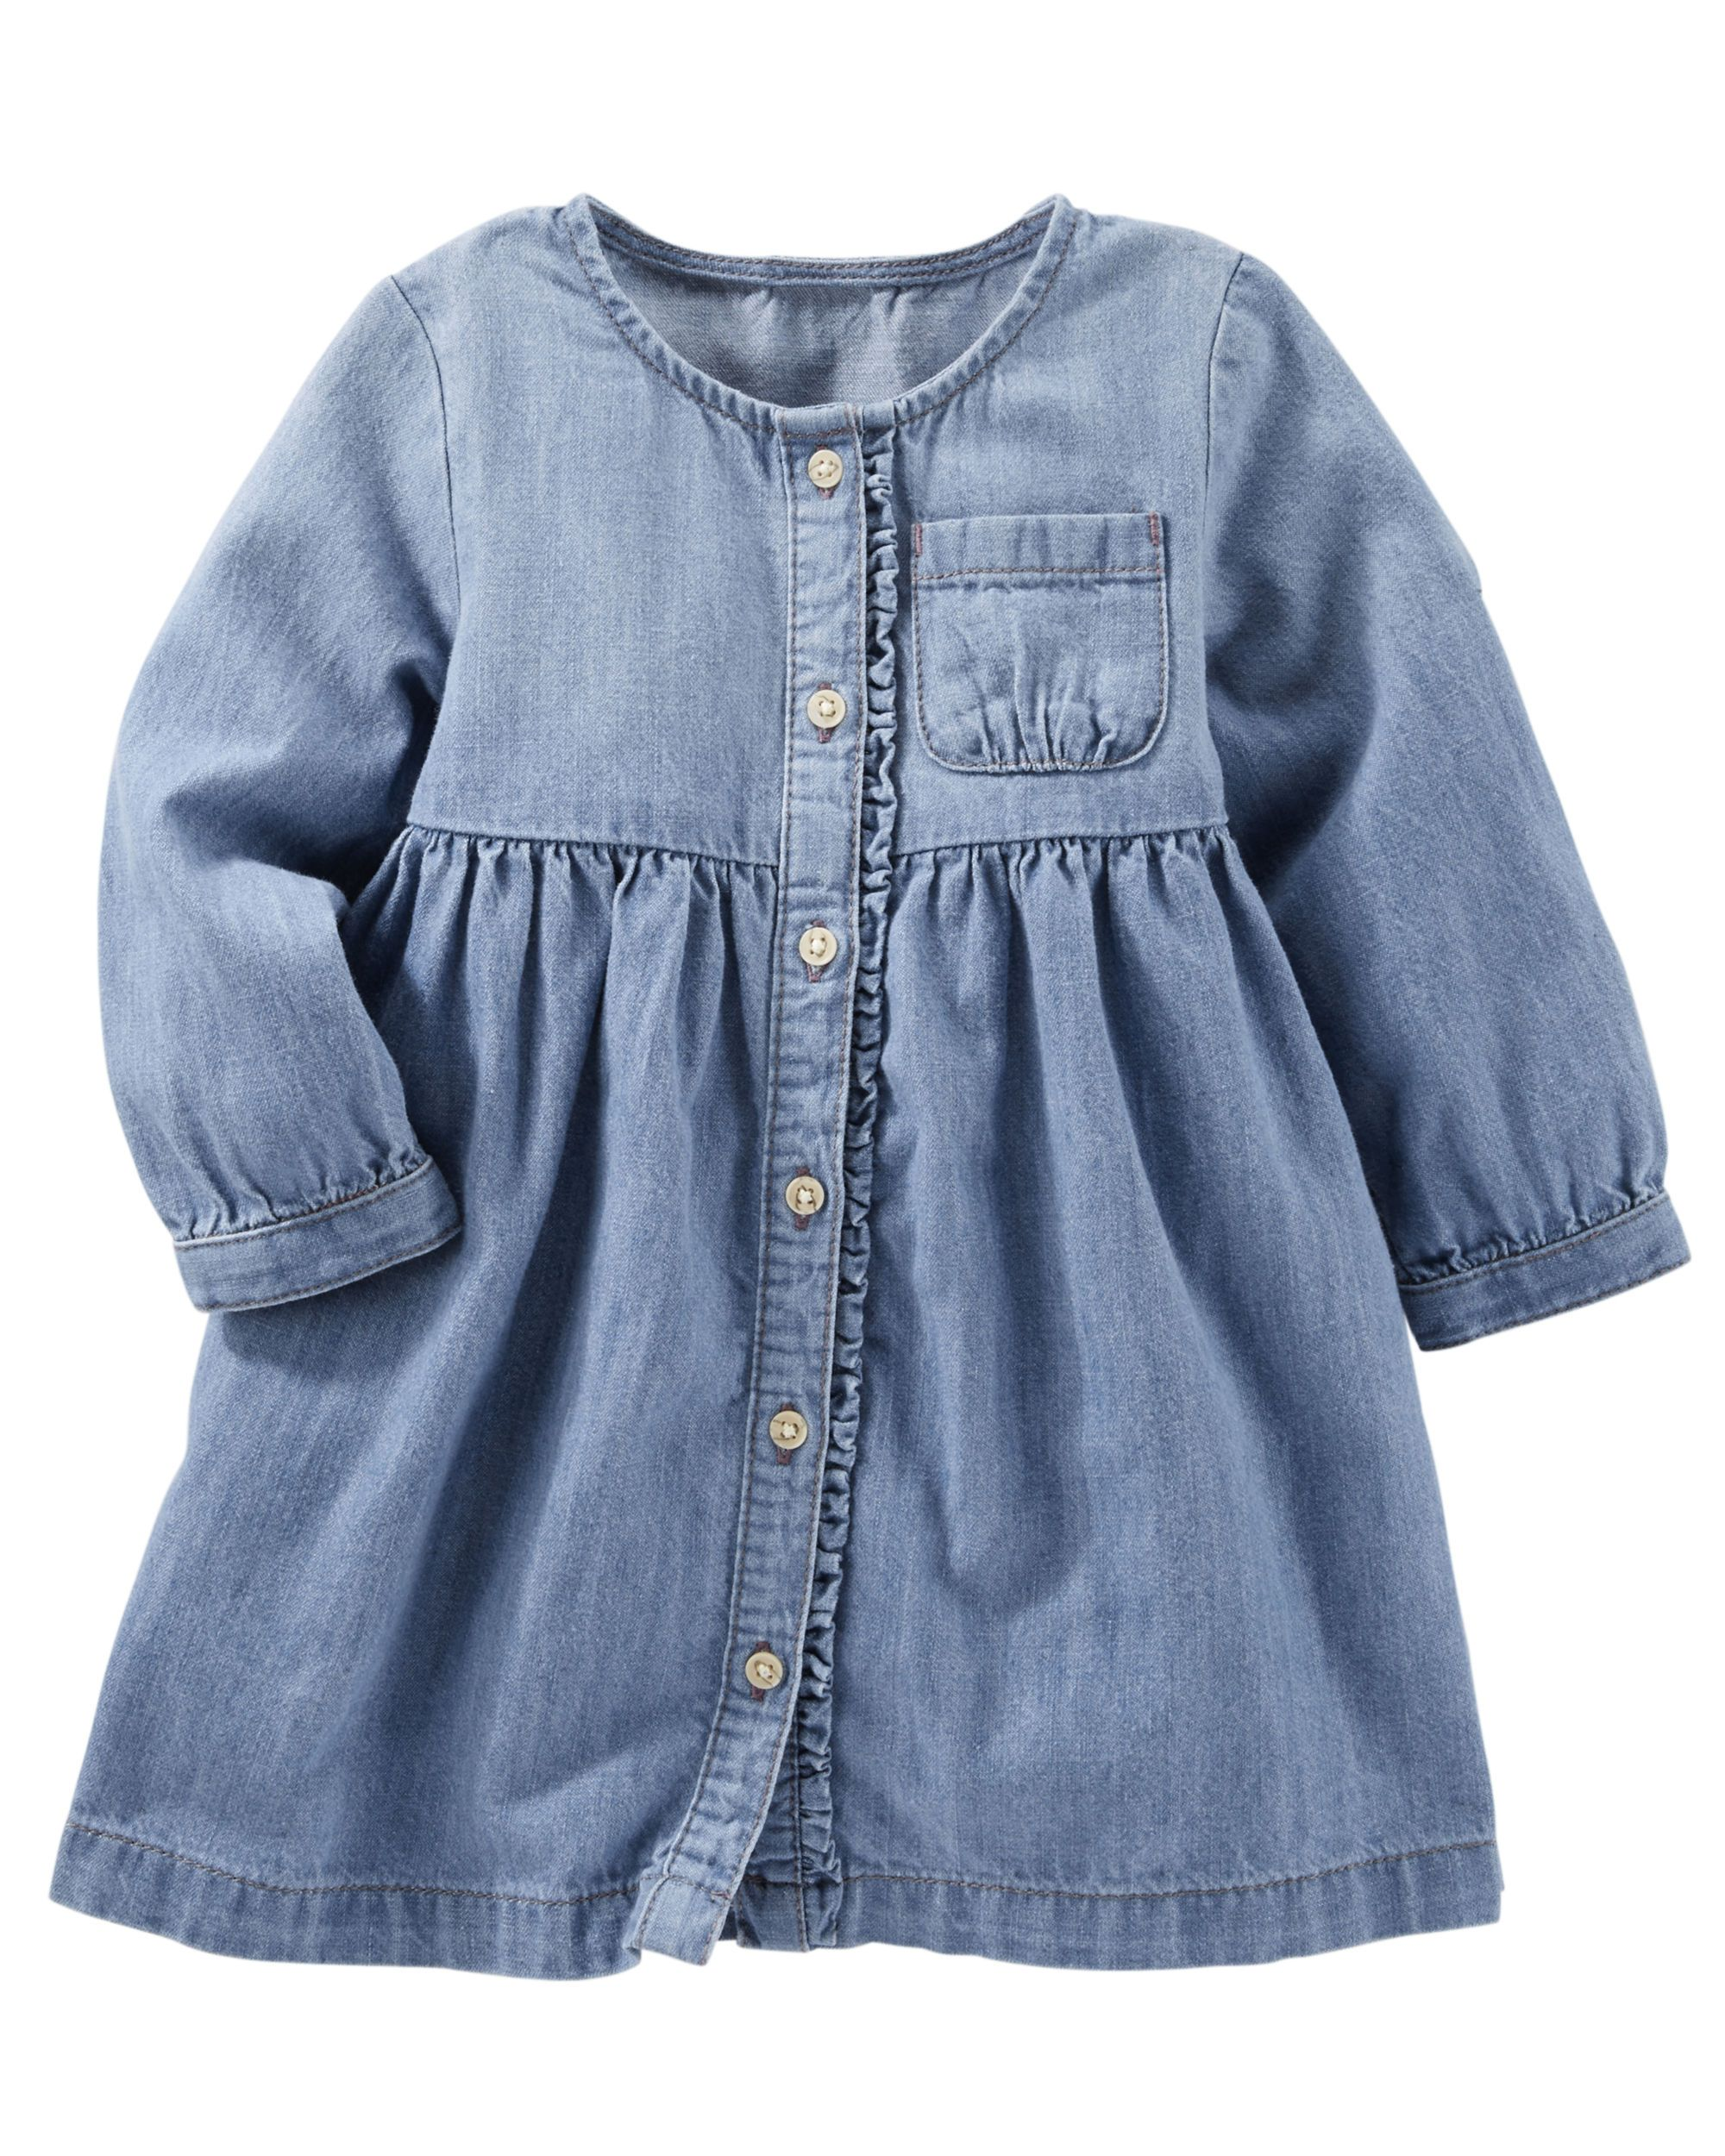 Baby Girl 2 Piece Denim Dress from OshKosh B gosh Shop clothing